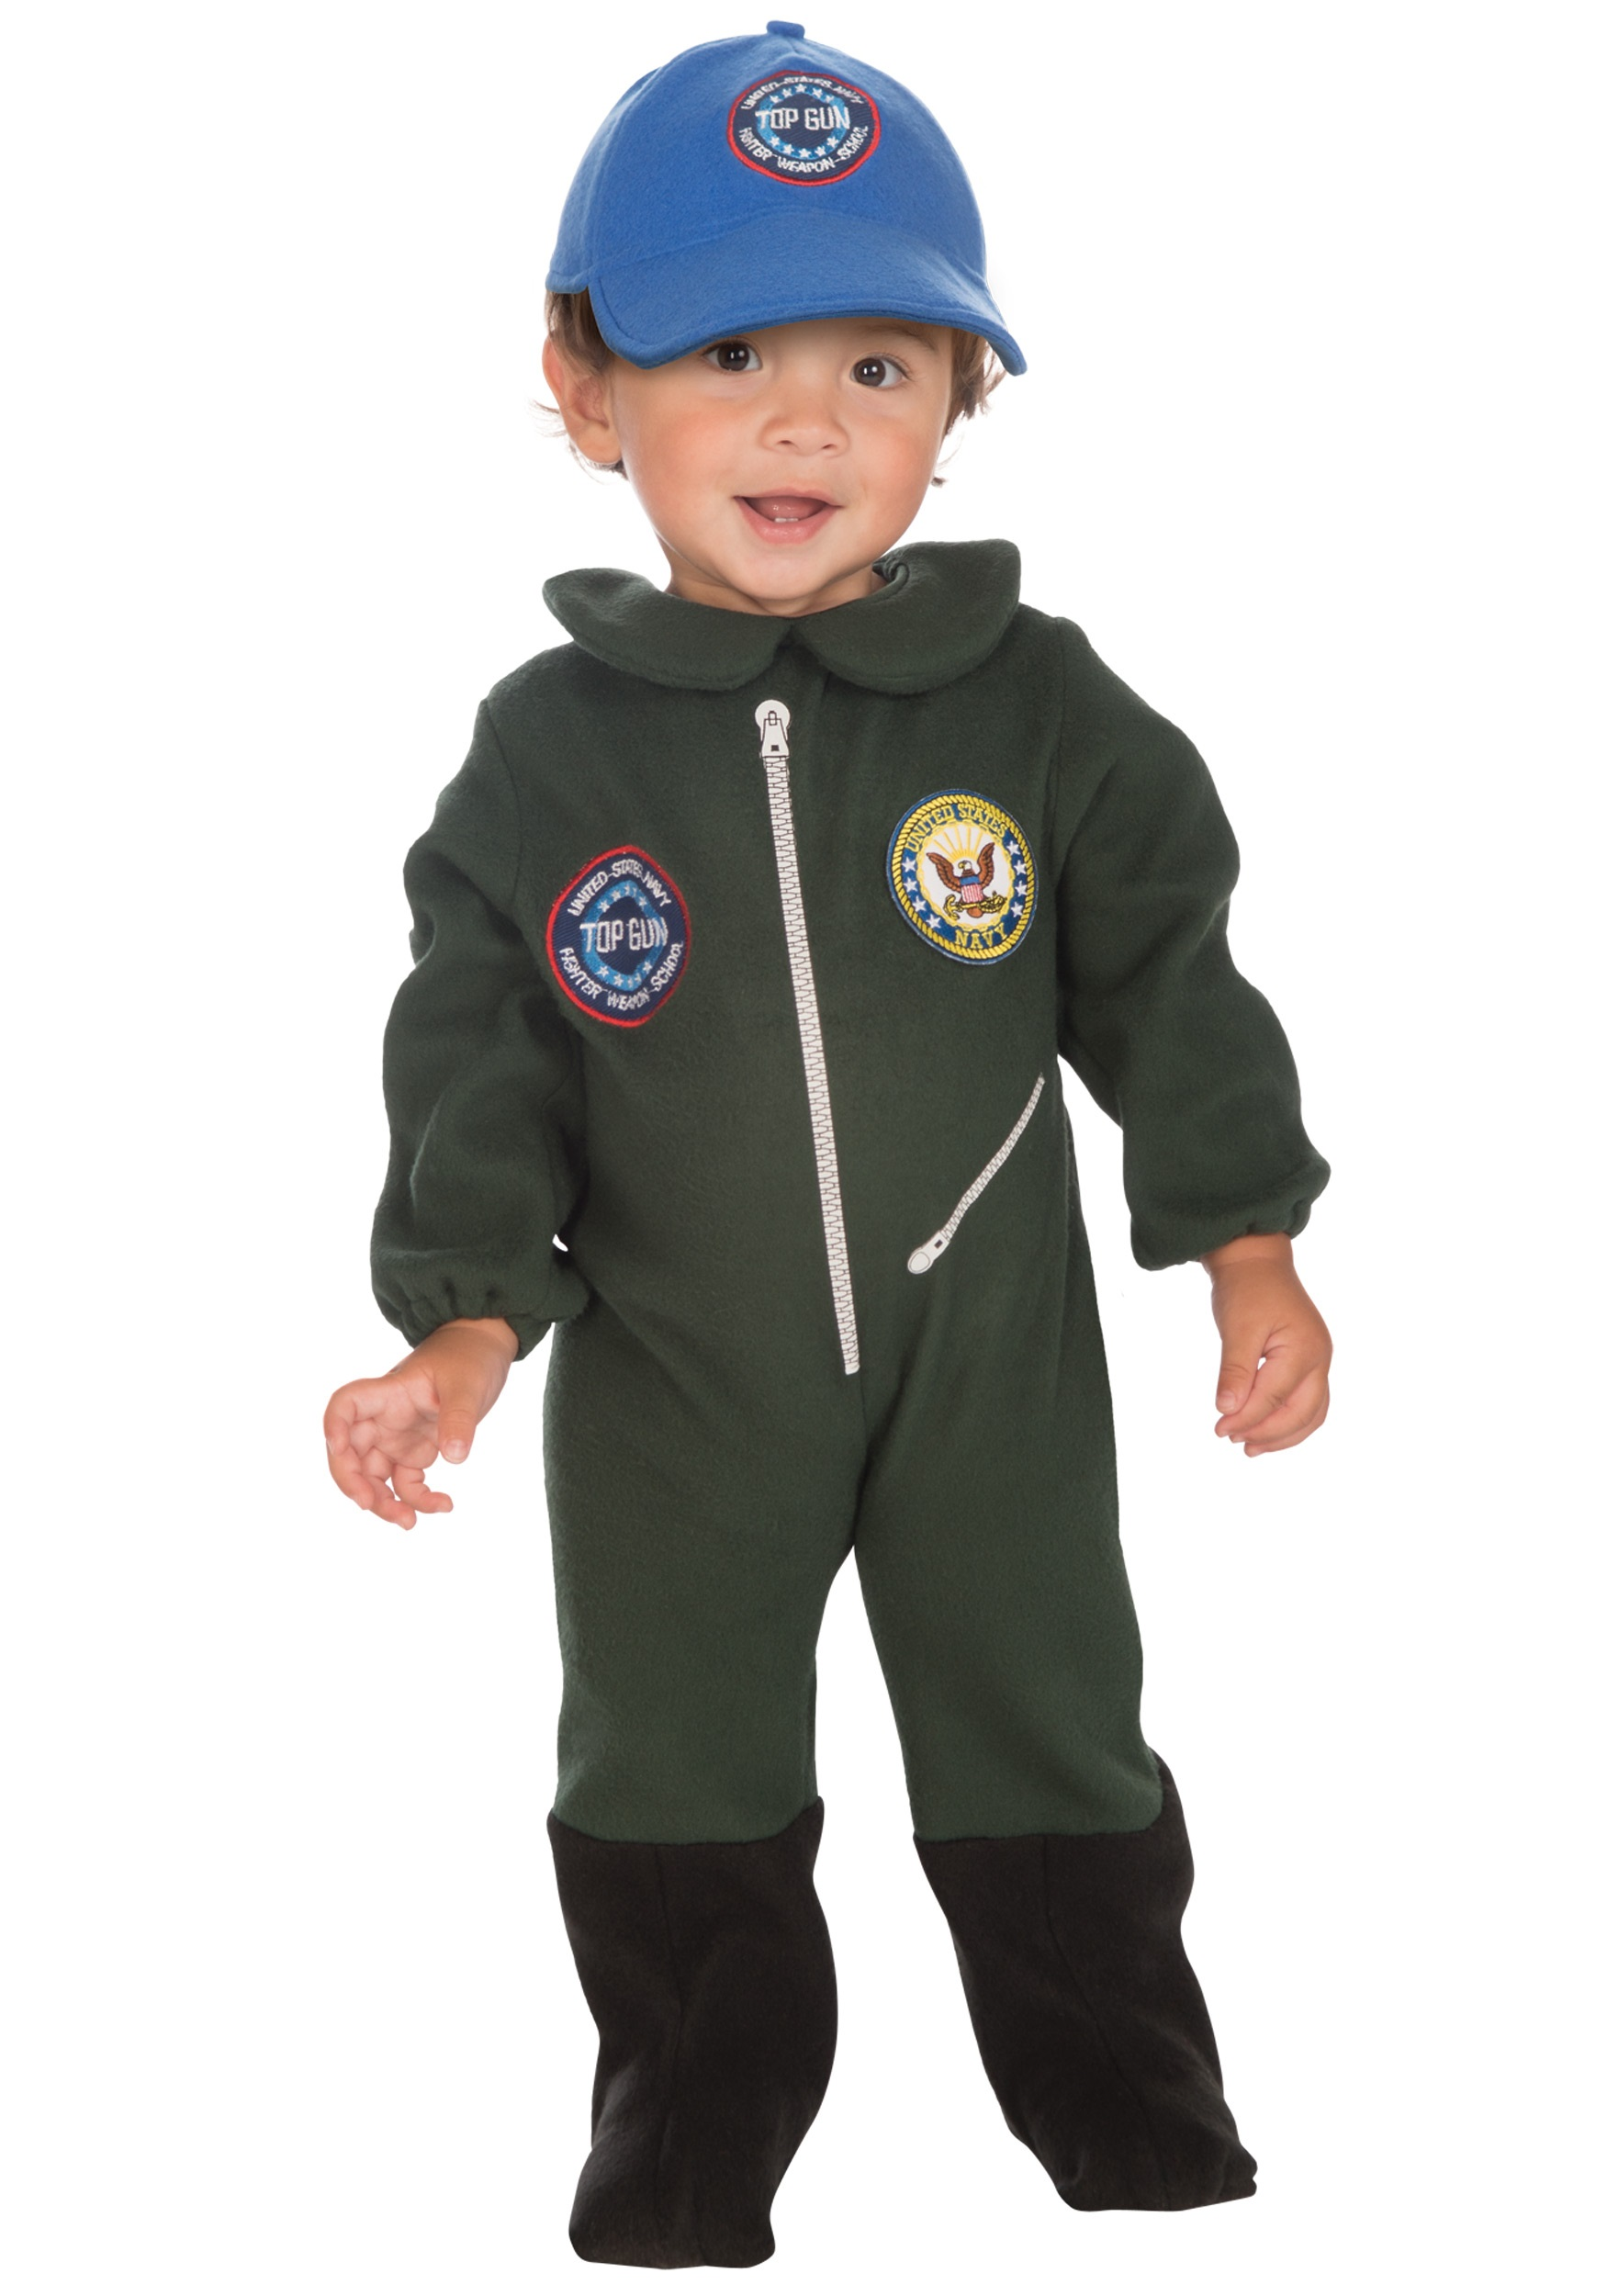 Toddler Top Gun Costume  sc 1 st  Halloween Costumes & Toddler Top Gun Costume - Halloween Costumes